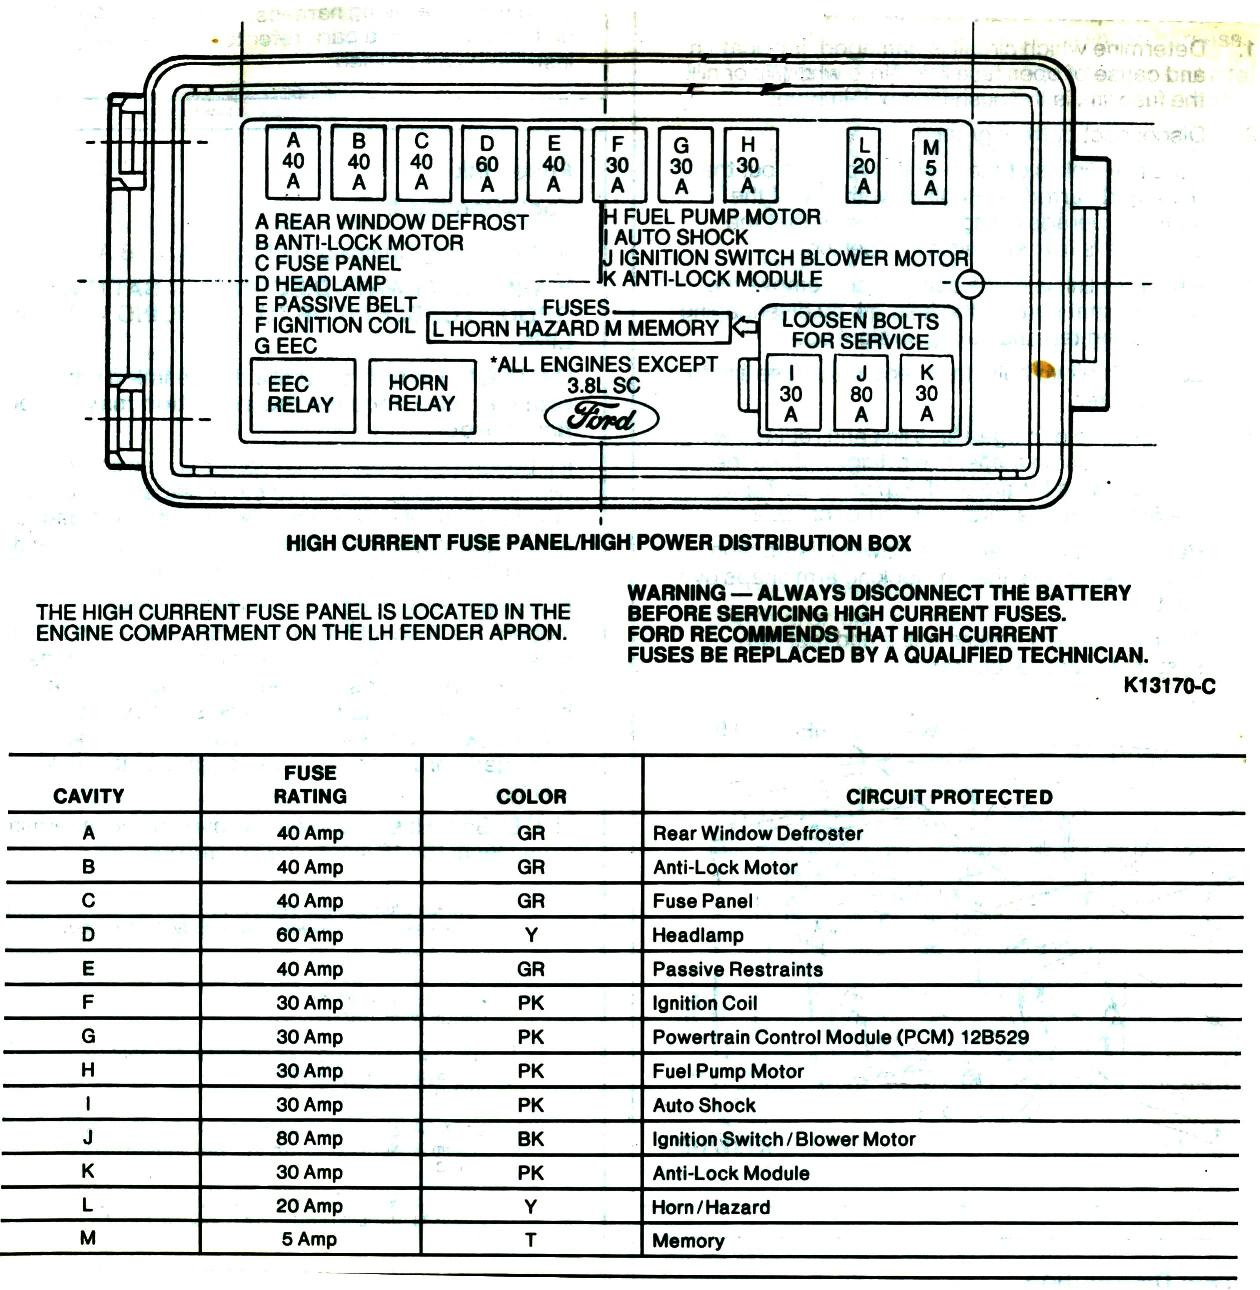 hight resolution of 92 thunderbird fuse box wiring diagrams saturn sc1 fuse diagram 1992 ford thunderbird fuse diagram